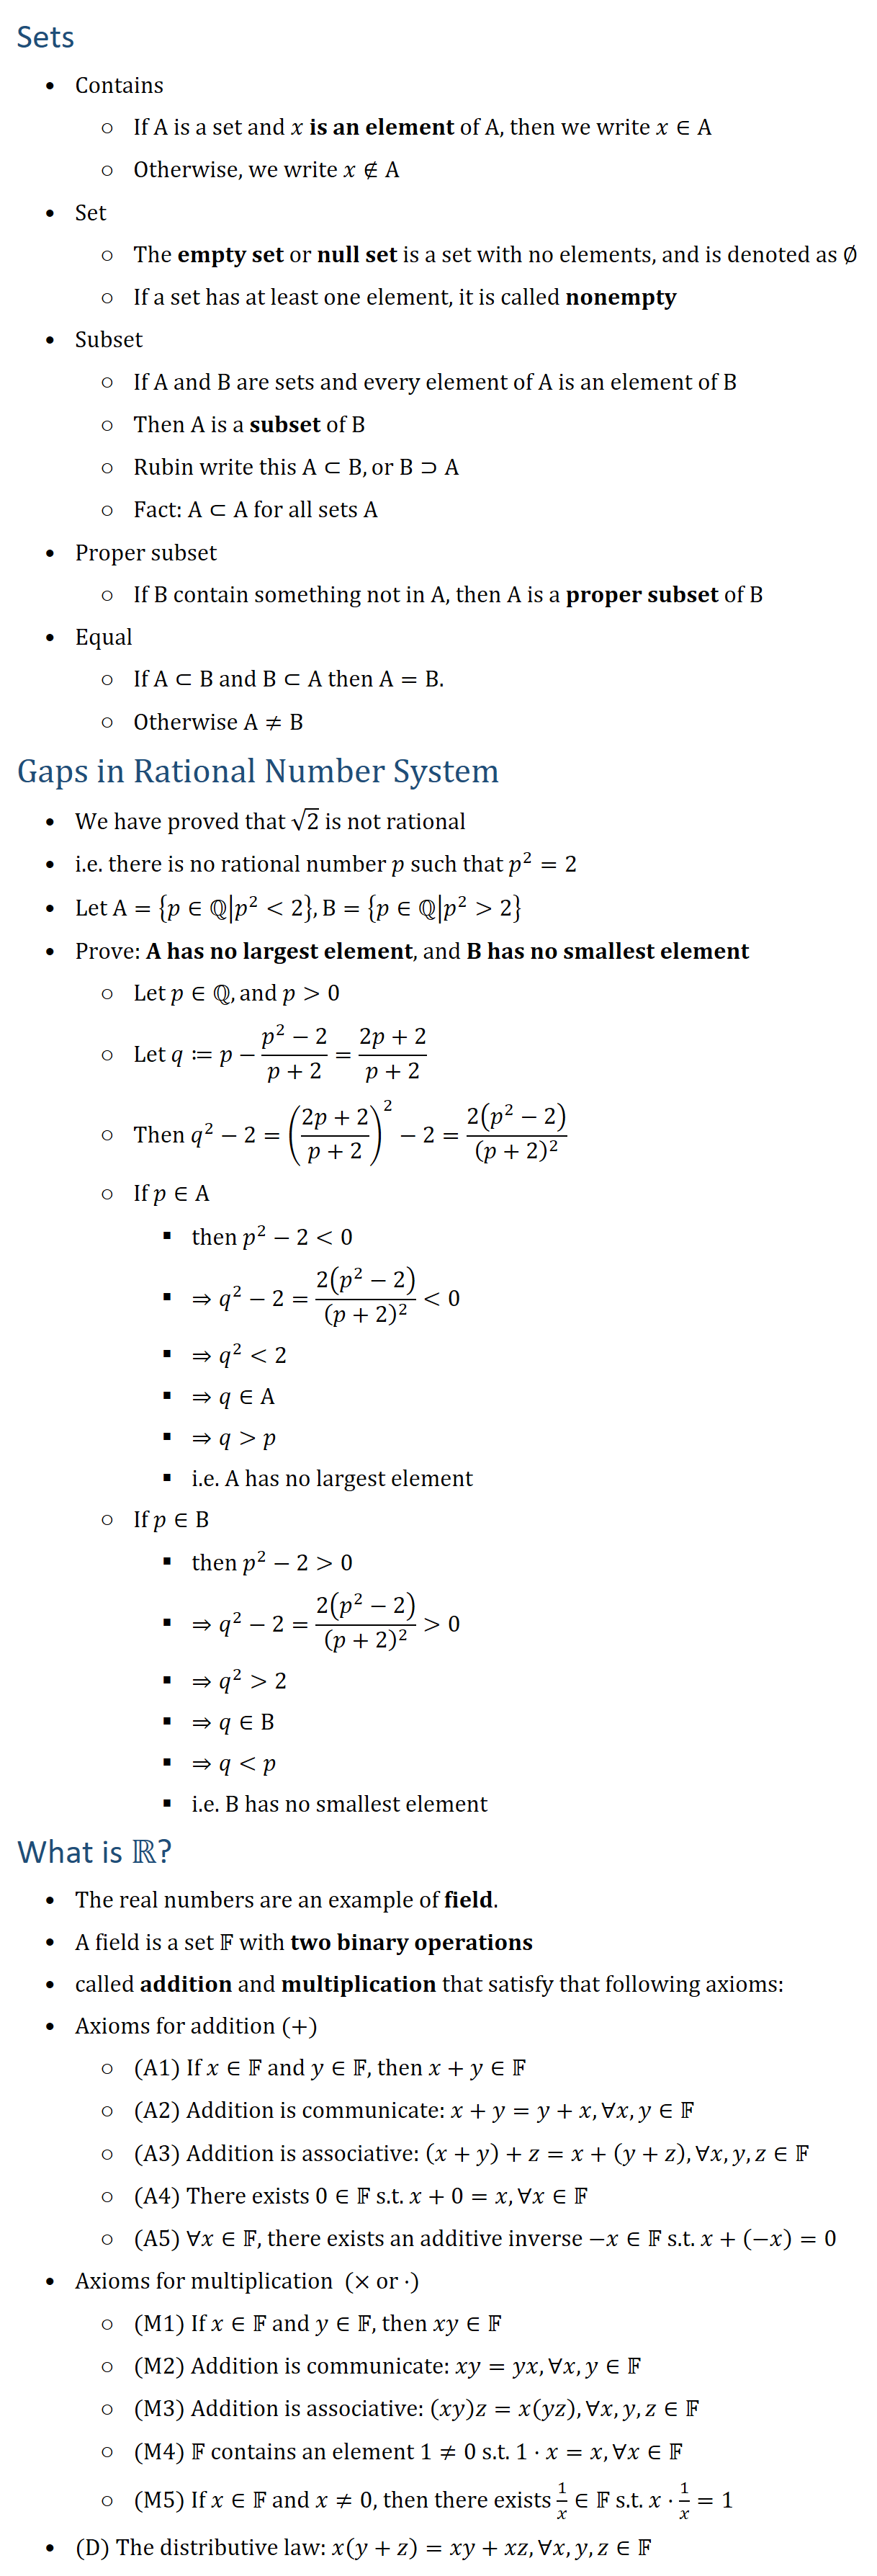 Sets • Contains ○ If A is a set and x is an element of A (an object of A), then we write x∈A ○ Otherwise, we write x∉A • Set ○ The empty set or null set is a set with no elements, and is denoted as ∅ ○ If a set has at least one element, it is called nonempty • Subset ○ If A and B are sets and every element of A is an element of B ○ Then A is a subset of B ○ Rubin write this A⊂B, or B⊃A ○ A⊂A for all sets A • Proper subset ○ If B contain something not in A, then A is a proper subset of B • Equal ○ If A⊂B and B⊂A then A=B. ○ Otherwise A≠B √2 is Not Rational • We proved that √2 is not rational • i.e. there is no rational number p such that p^2=2 • Let A={p∈Qp^2<2}, B={p∈Qp^2>2} • Prove: A has no largest element, and B has no smallest element ○ Let p∈Q, and p>0 ○ Let q≔p−(p^2−2)/(p+2)=(2p+2)/(p+2),then q^2−2=((2p+2)/(p+2))^2−2=2(p^2−2)/(p+2)^2 ○ If p∈A § then p^2−2<0 § ⇒q^2−2=2(p^2−2)/(p+2)^2 <0 § ⇒q^2<2 § ⇒q∈A § ⇒q>p § i.e. A has no largest element ○ If p∈B § then p^2−2>0 § ⇒q^2−2=2(p^2−2)/(p+2)^2 >0 § ⇒q^2>2 § ⇒q∈B § ⇒q</p> <p § i.e. B has no smallest element What is R? • The real numbers are an example of field. • A field is a set F with two binary operations called addition and multiplication that satisfy that following axioms: • Axioms for addition (+) ○ (A1) If x∈F and y∈F, then x+y∈F ○ (A2) Addition is communicate: x+y=y+x,∀x,y∈F ○ (A3) Addition is associative: (x+y)+z=x+(y+z),∀x,y,z∈F ○ (A4) There exists 0∈F s.t. x+0=x, ∀x∈F ○ (A5) ∀x∈F, there exists an additive inverse −x∈F s.t. x+(−x)=0 • Axioms for multiplication (× or ⋅) ○ (M1) If x∈F and y∈F, then xy∈F ○ (M2) Addition is communicate: xy=yx,∀x,y∈F ○ (M3) Addition is associative: (xy)z=x(yz),∀x,y,z∈F ○ (M4) F contains an element 1≠0 s.t. 1⋅x=x, ∀x∈F ○ (M5) If x∈F and x≠0, then there exists 1/x∈F s.t. x⋅1/x=1 • (D) The distributive law: x(y+z)=xy+xz, ∀x,y,z∈F